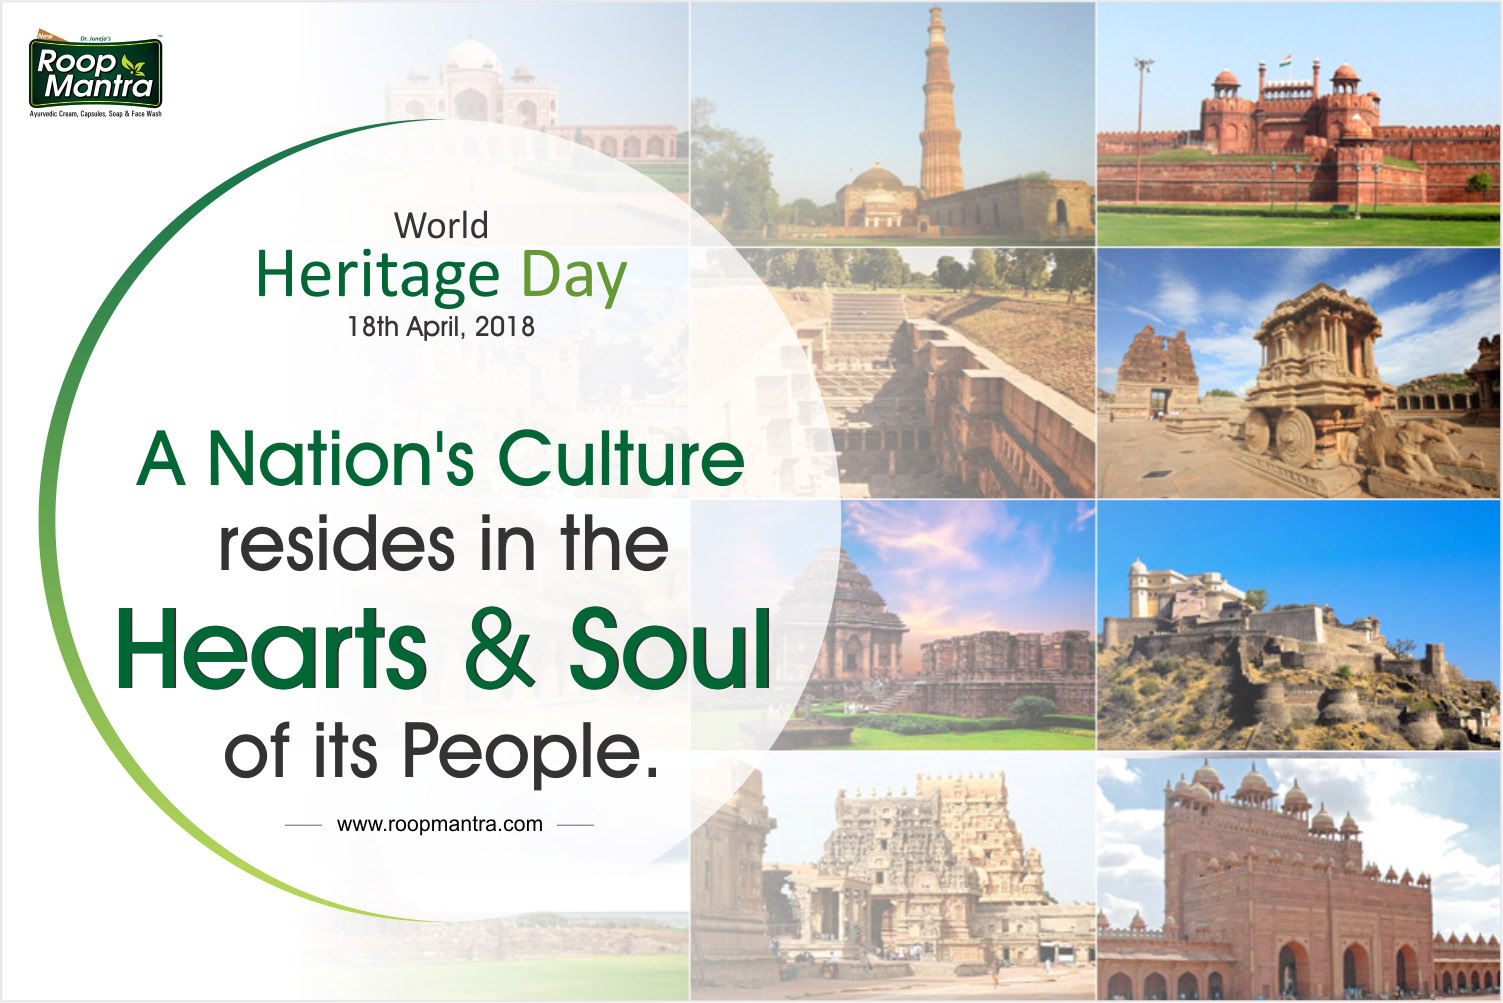 18 April 2018, World Heritage Day, Indian Festival, Roop Mantra